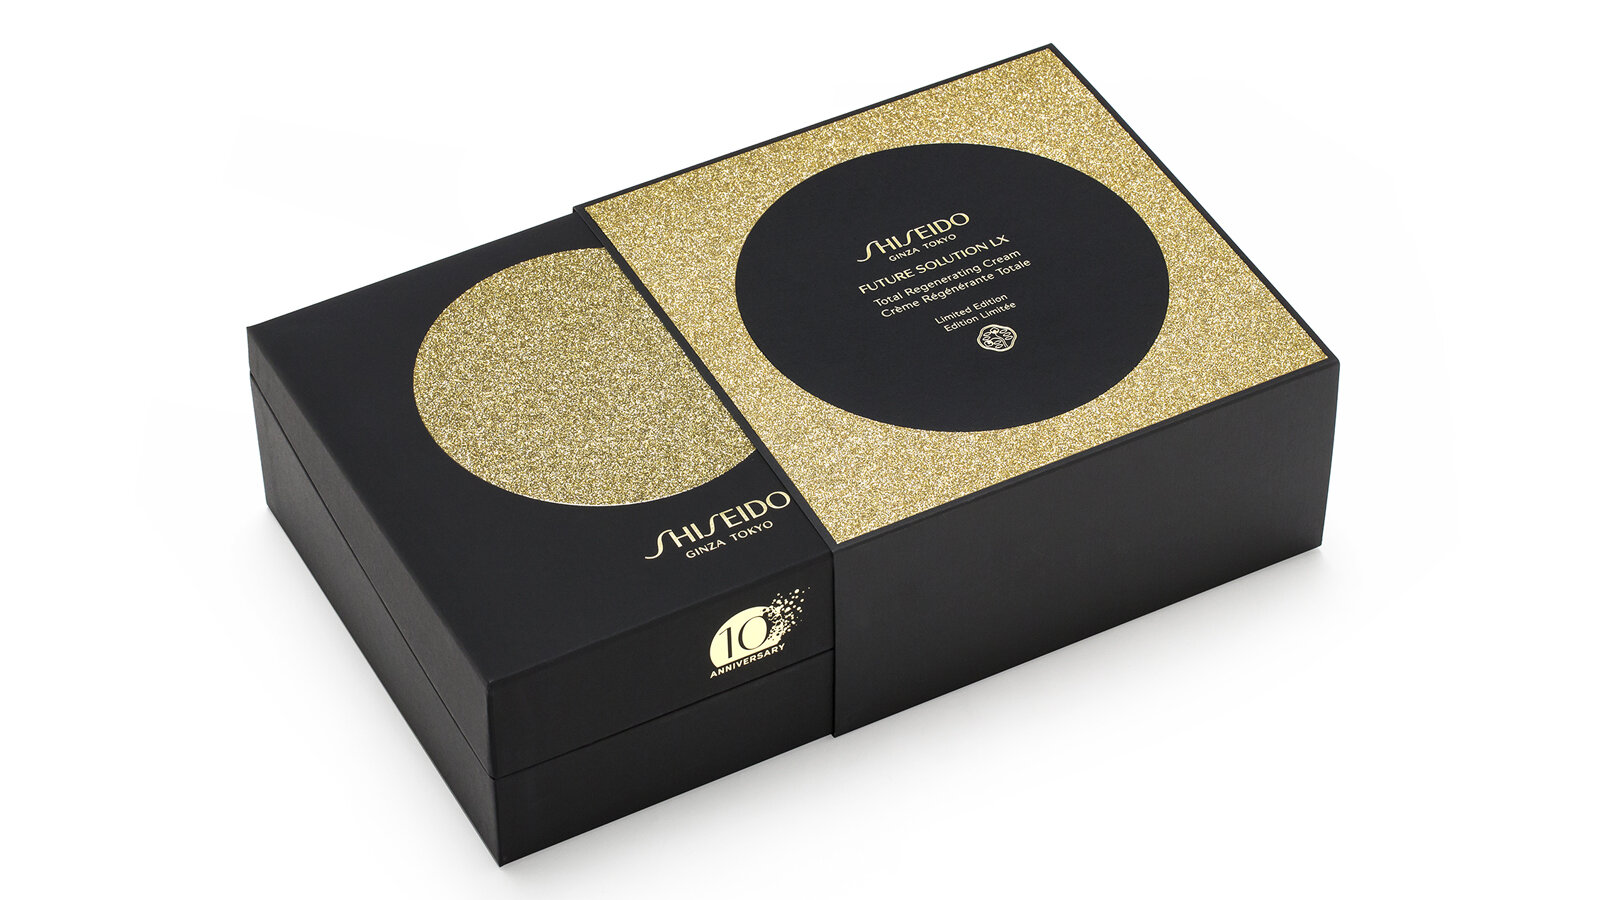 3-2S_SHISEIDO-coffret 10 ans -Design-Packaging.jpg